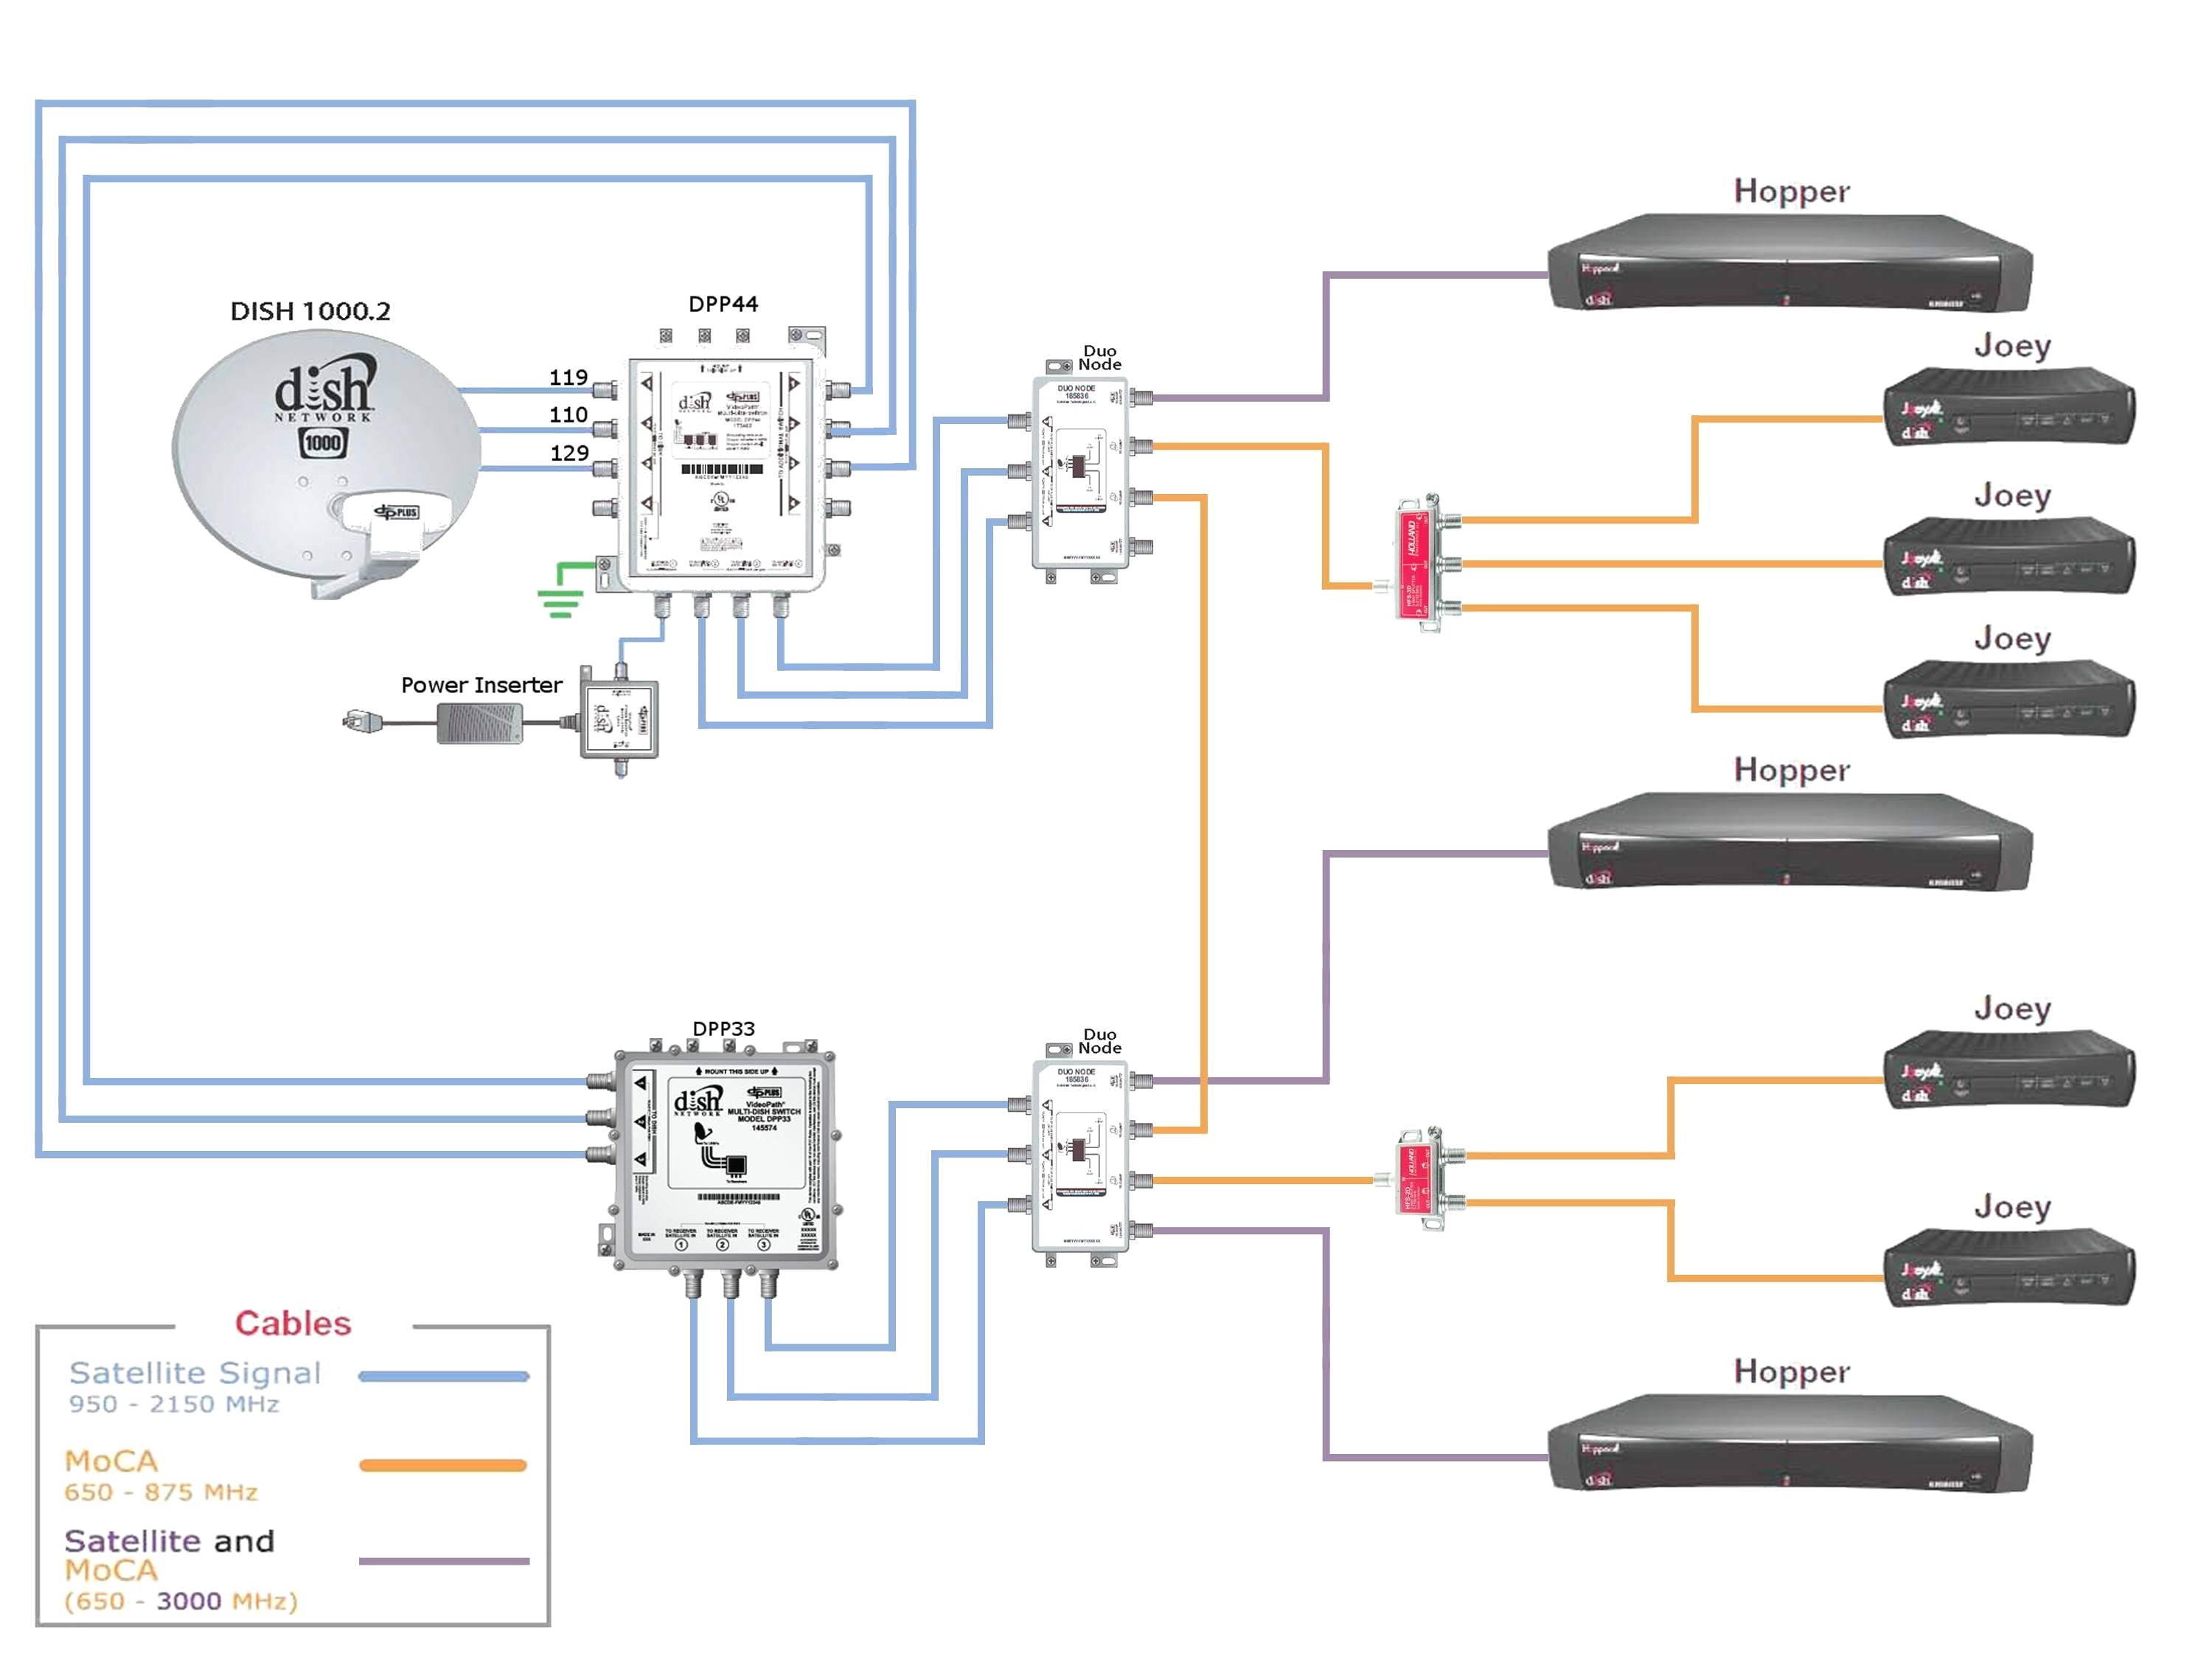 Dish Network Wiring Diagram Valid Rv Cable And Satellite Wiring Diagram Fresh Circuit Direct Tv